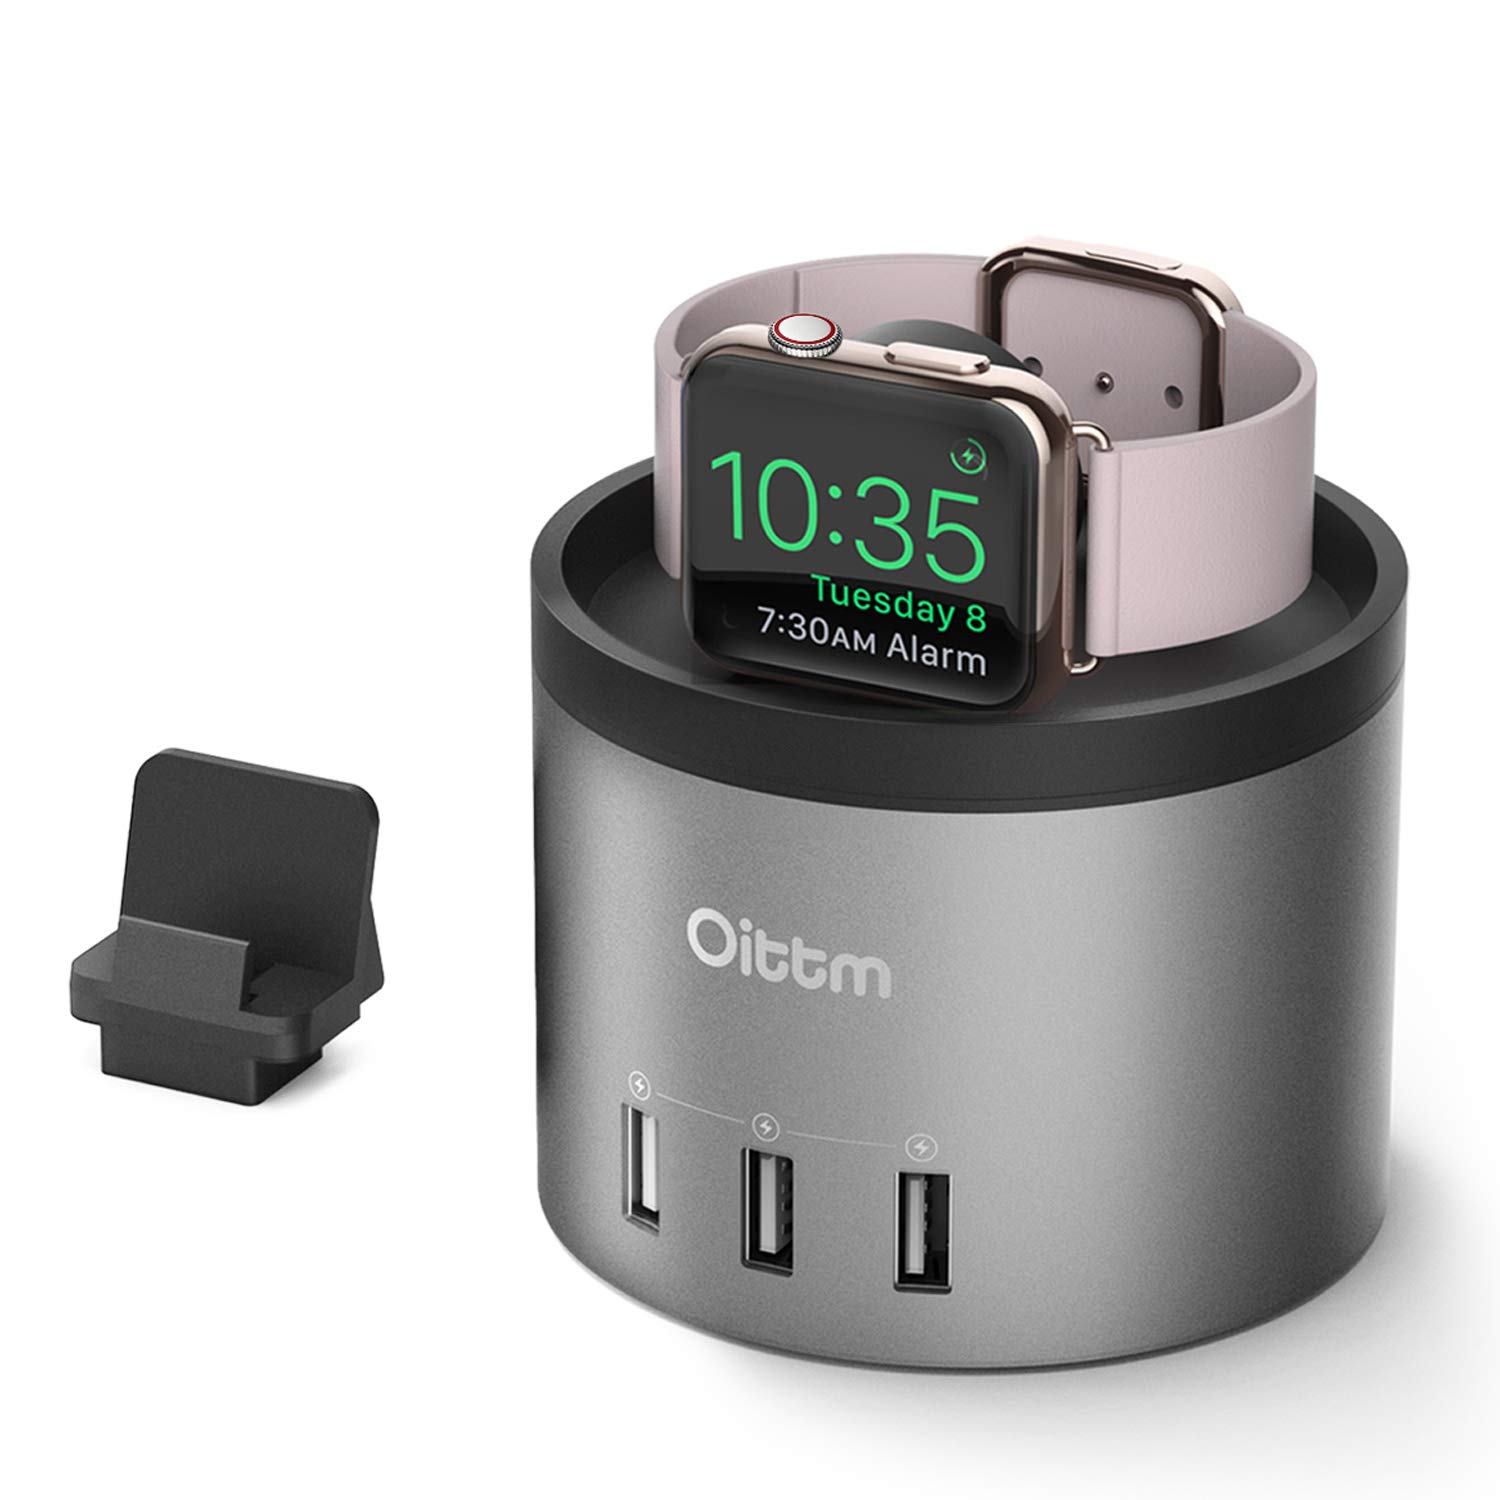 Oittm Charging Stand for Apple Watch Series 4 [2 in 1 Bracket Power Dock] 4-Port USB Charging Station w/Phone Holder for iPhone Xs, Xs Max, Xr, X, 8 Plus, 7, 6 Plus, iWatch 4/3/2/1 (Grey) by Oittm